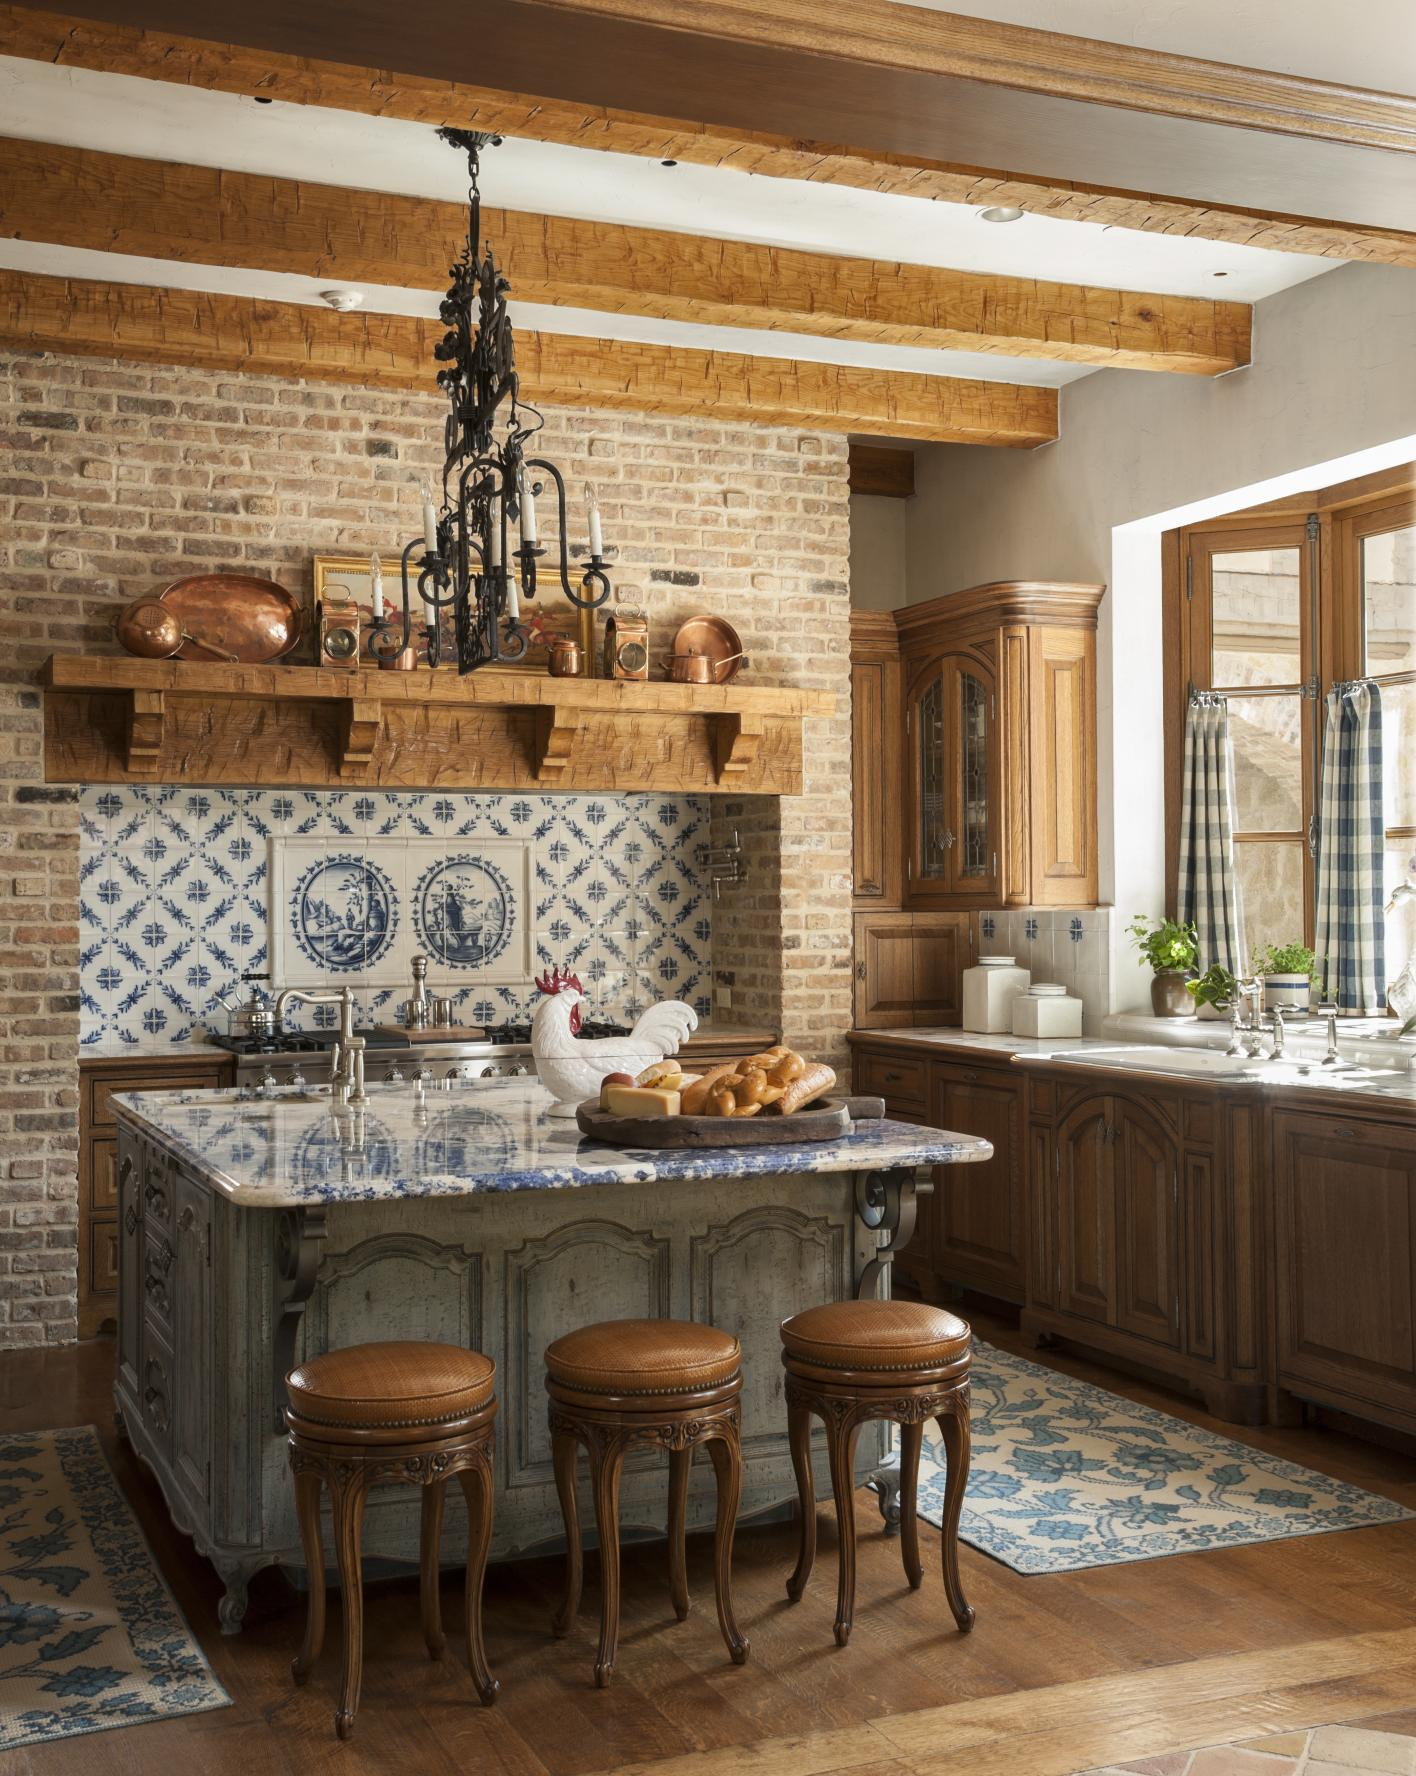 Ktfch50 Ideas Here Kitchen Traditional French Country Home Collection 5958